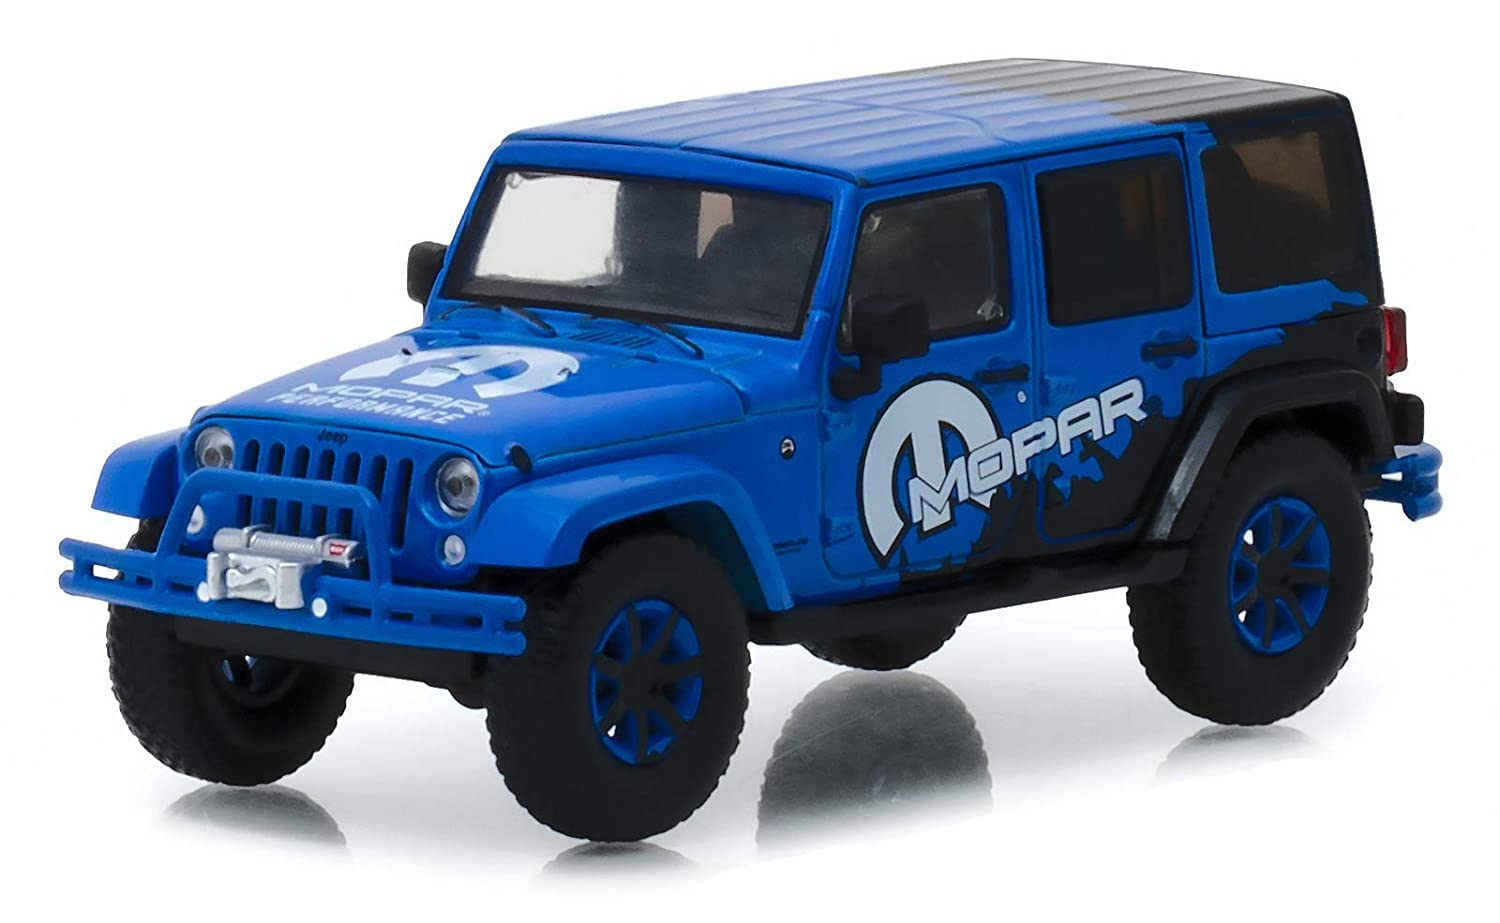 43 2012 Jeep Wrangler Unlimited Mopar Off-Road Edition Greenlight 86099 1